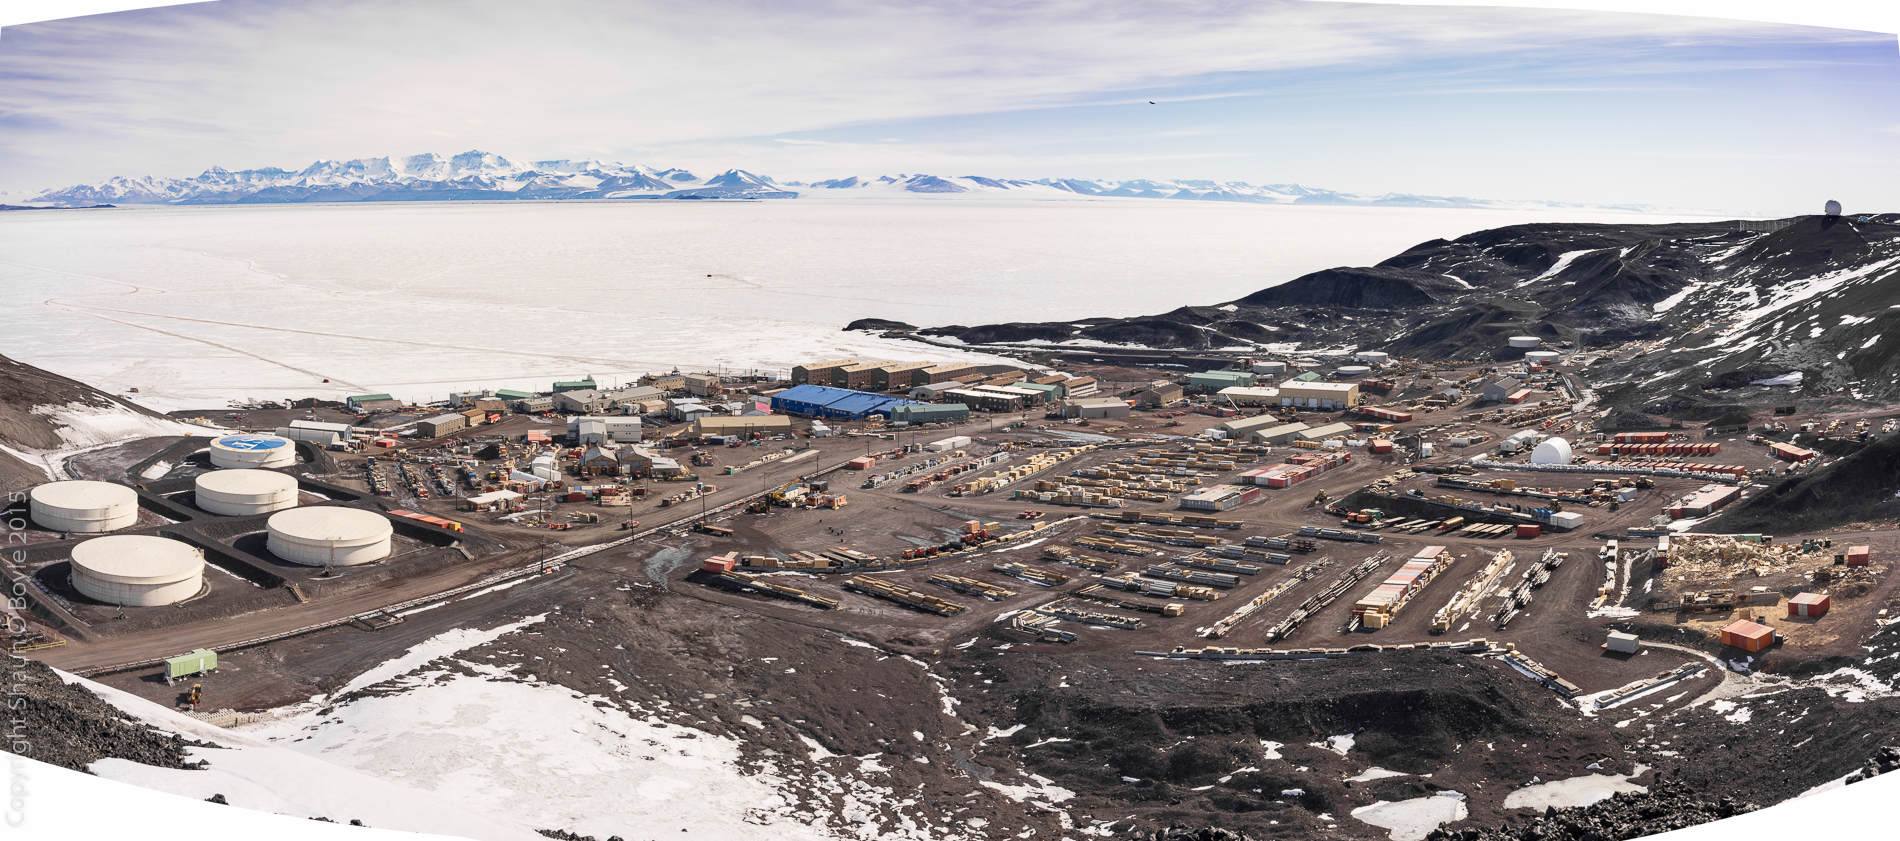 McMurdo Station on Dec 4, 2015 from the heights at T-Site, this image gives an idea of the amount of cargo that moves through the station